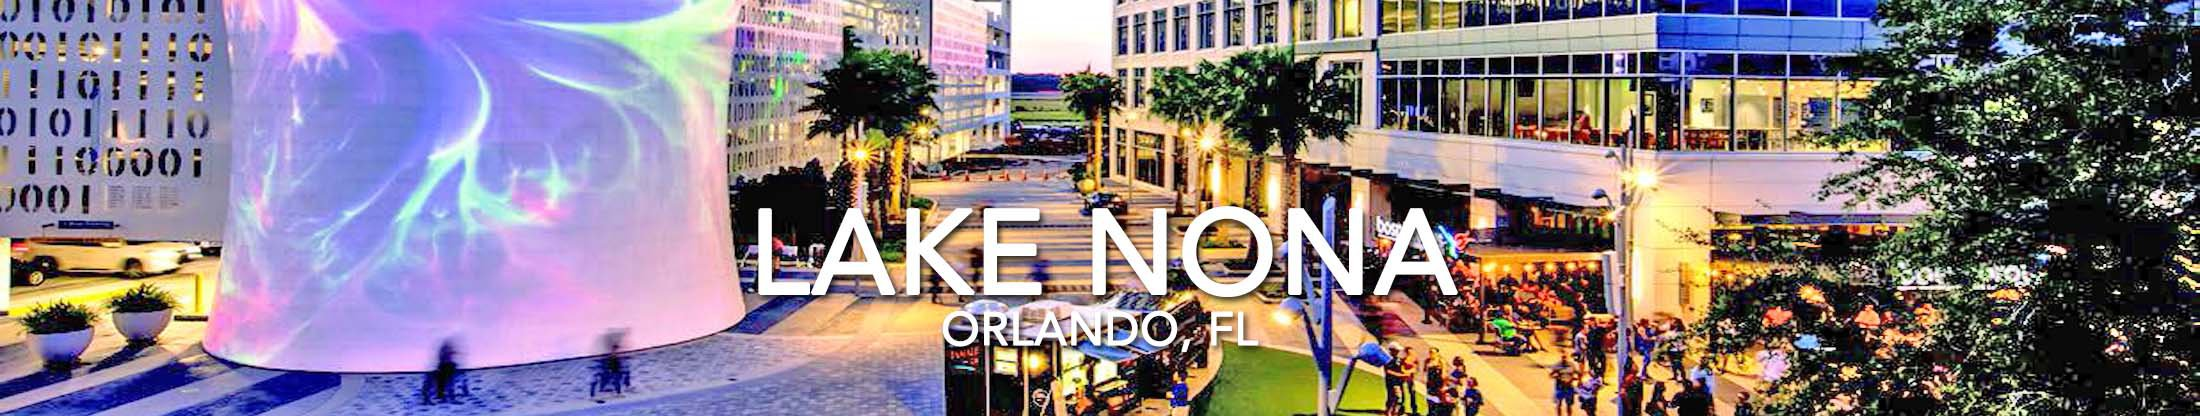 About Lake Nona Orlando Florida